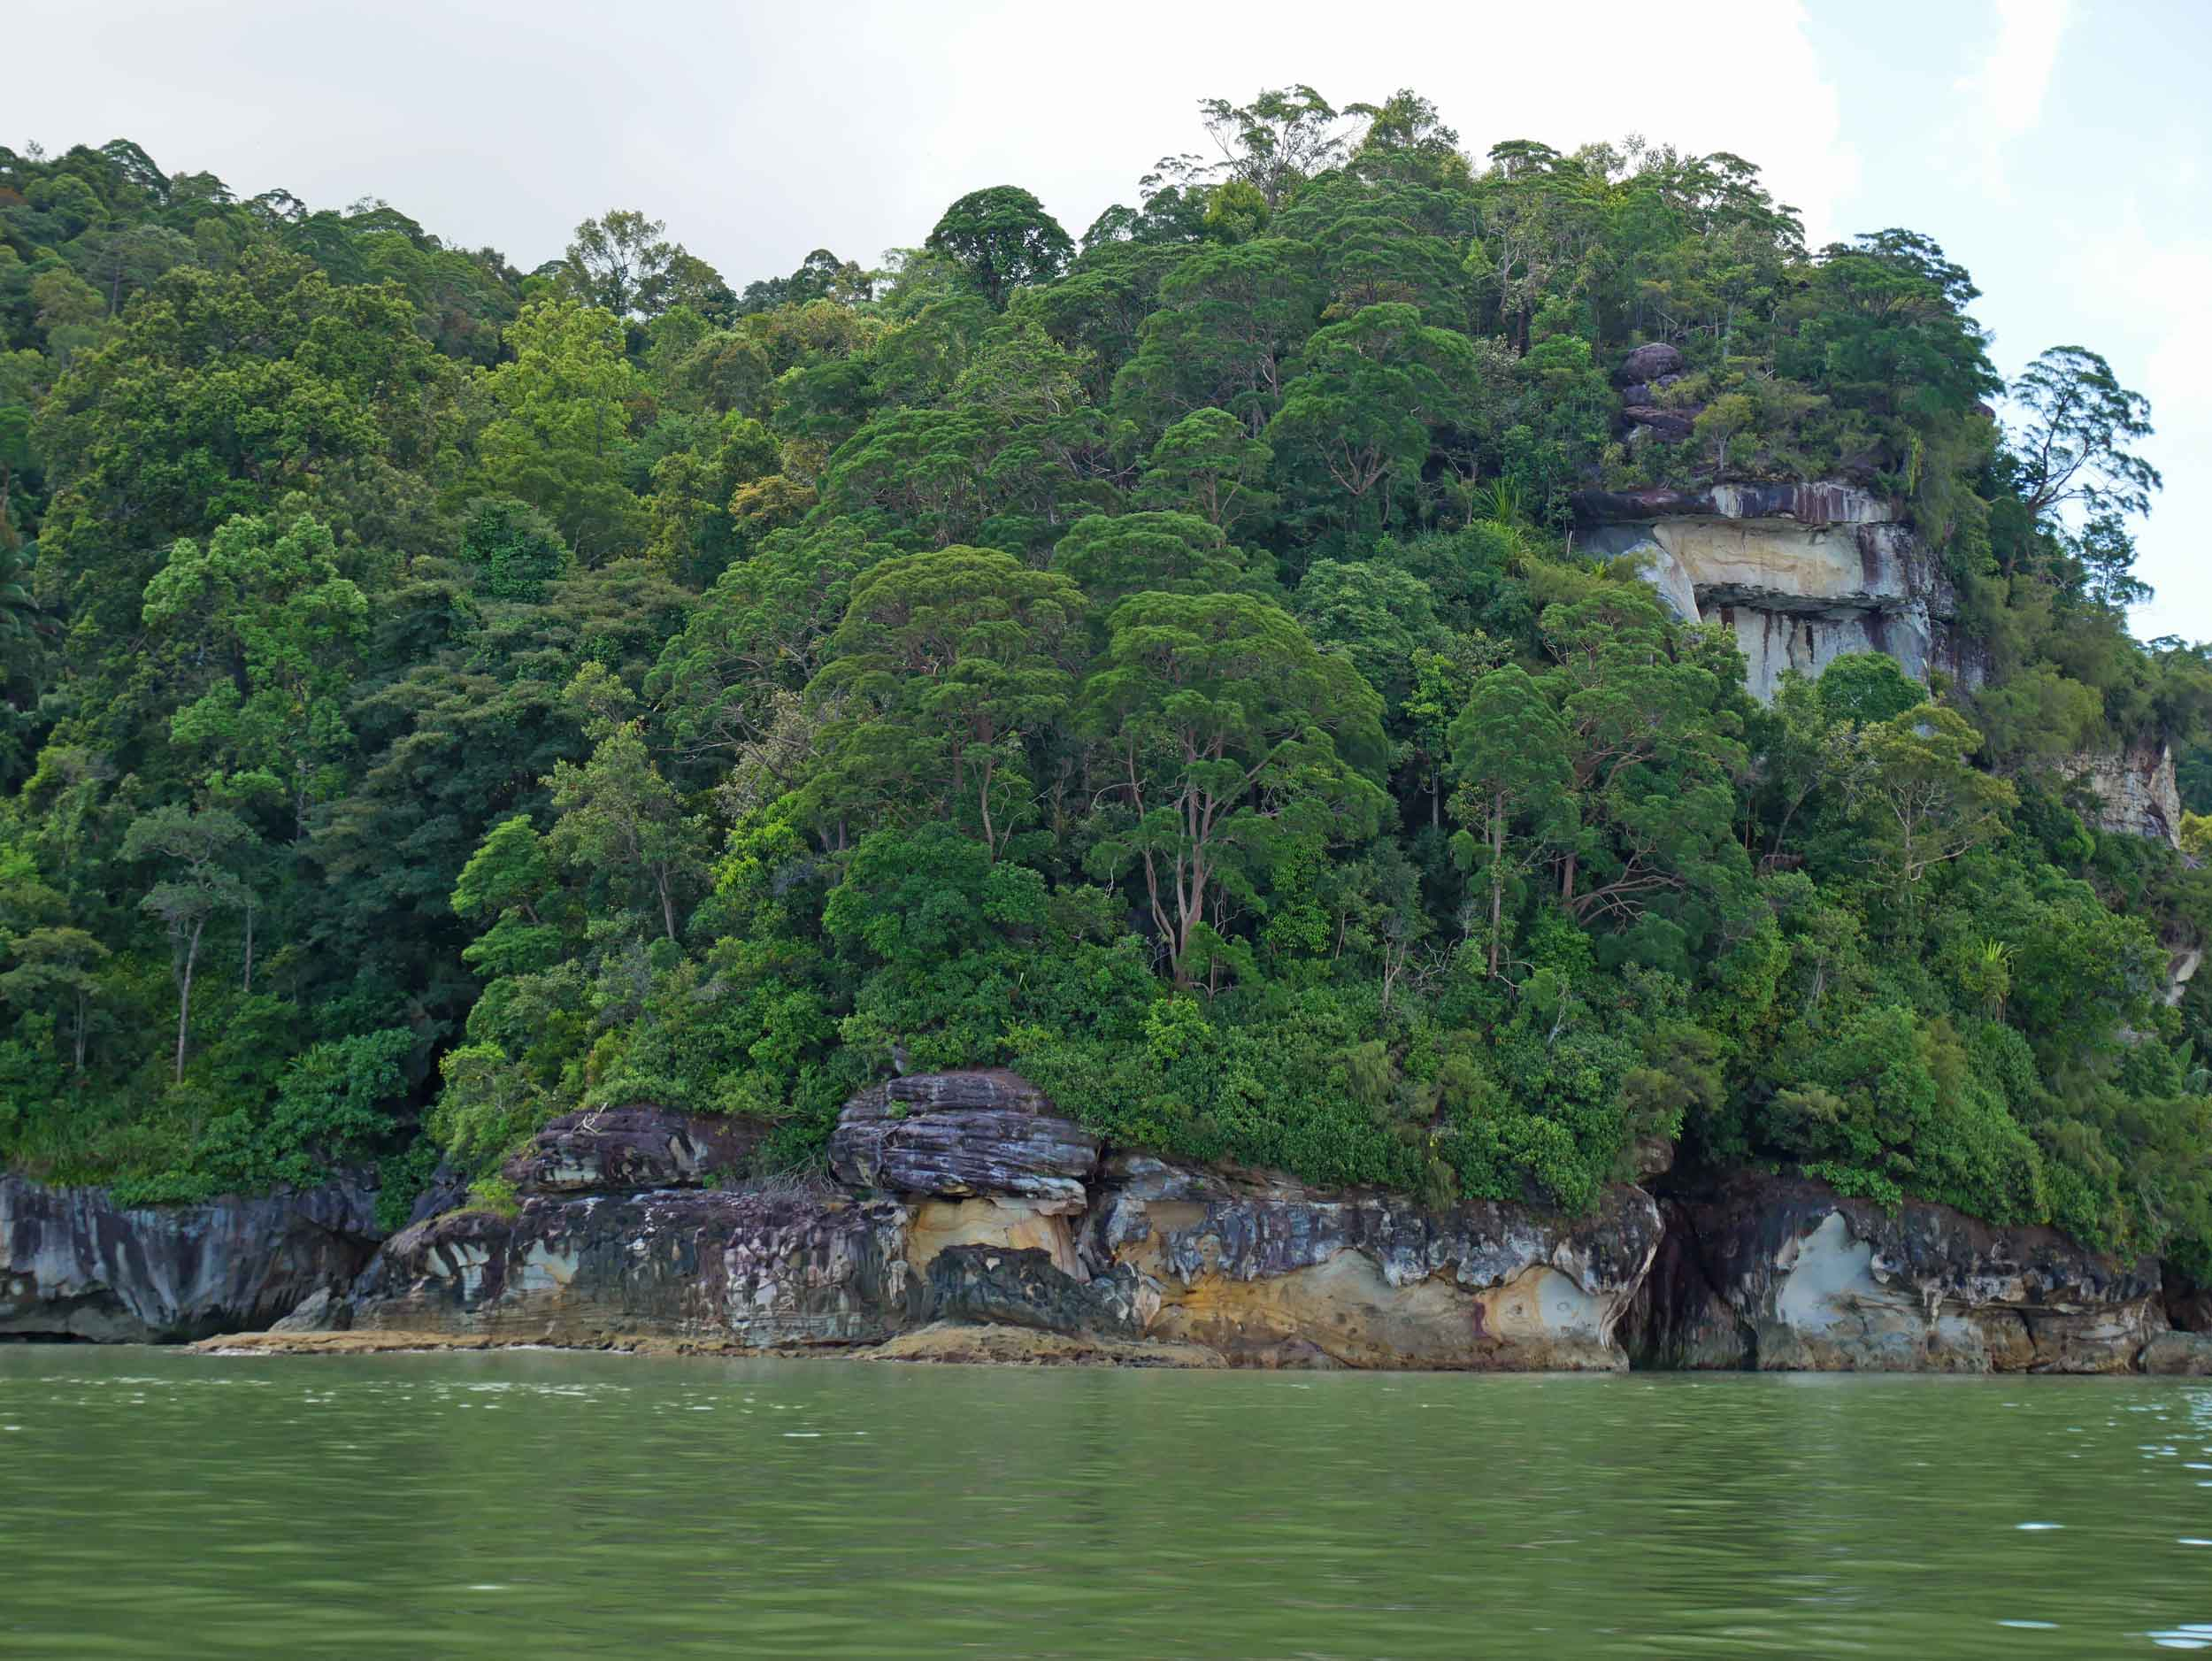 With the coastal cliffs surround Bako, its easy to see why the boat trip is warranted!